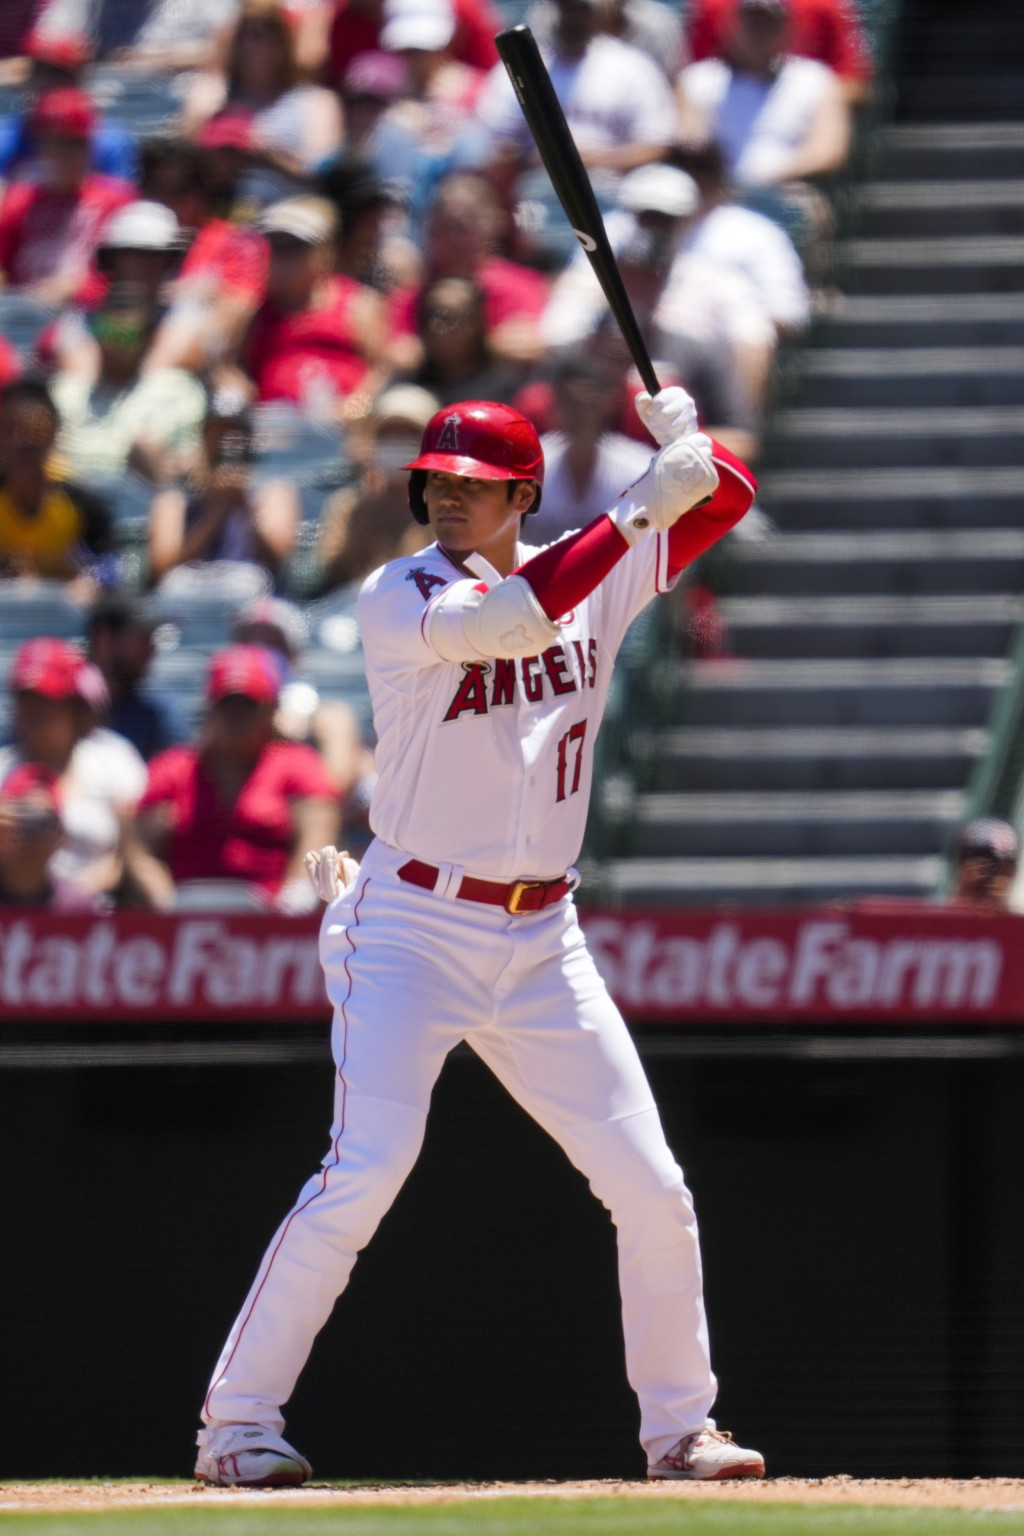 Los Angeles Angels designated hitter Shohei Ohtani (17) steps up to bat during the first inning of a baseball game against the Baltimore Orioles Sunda...